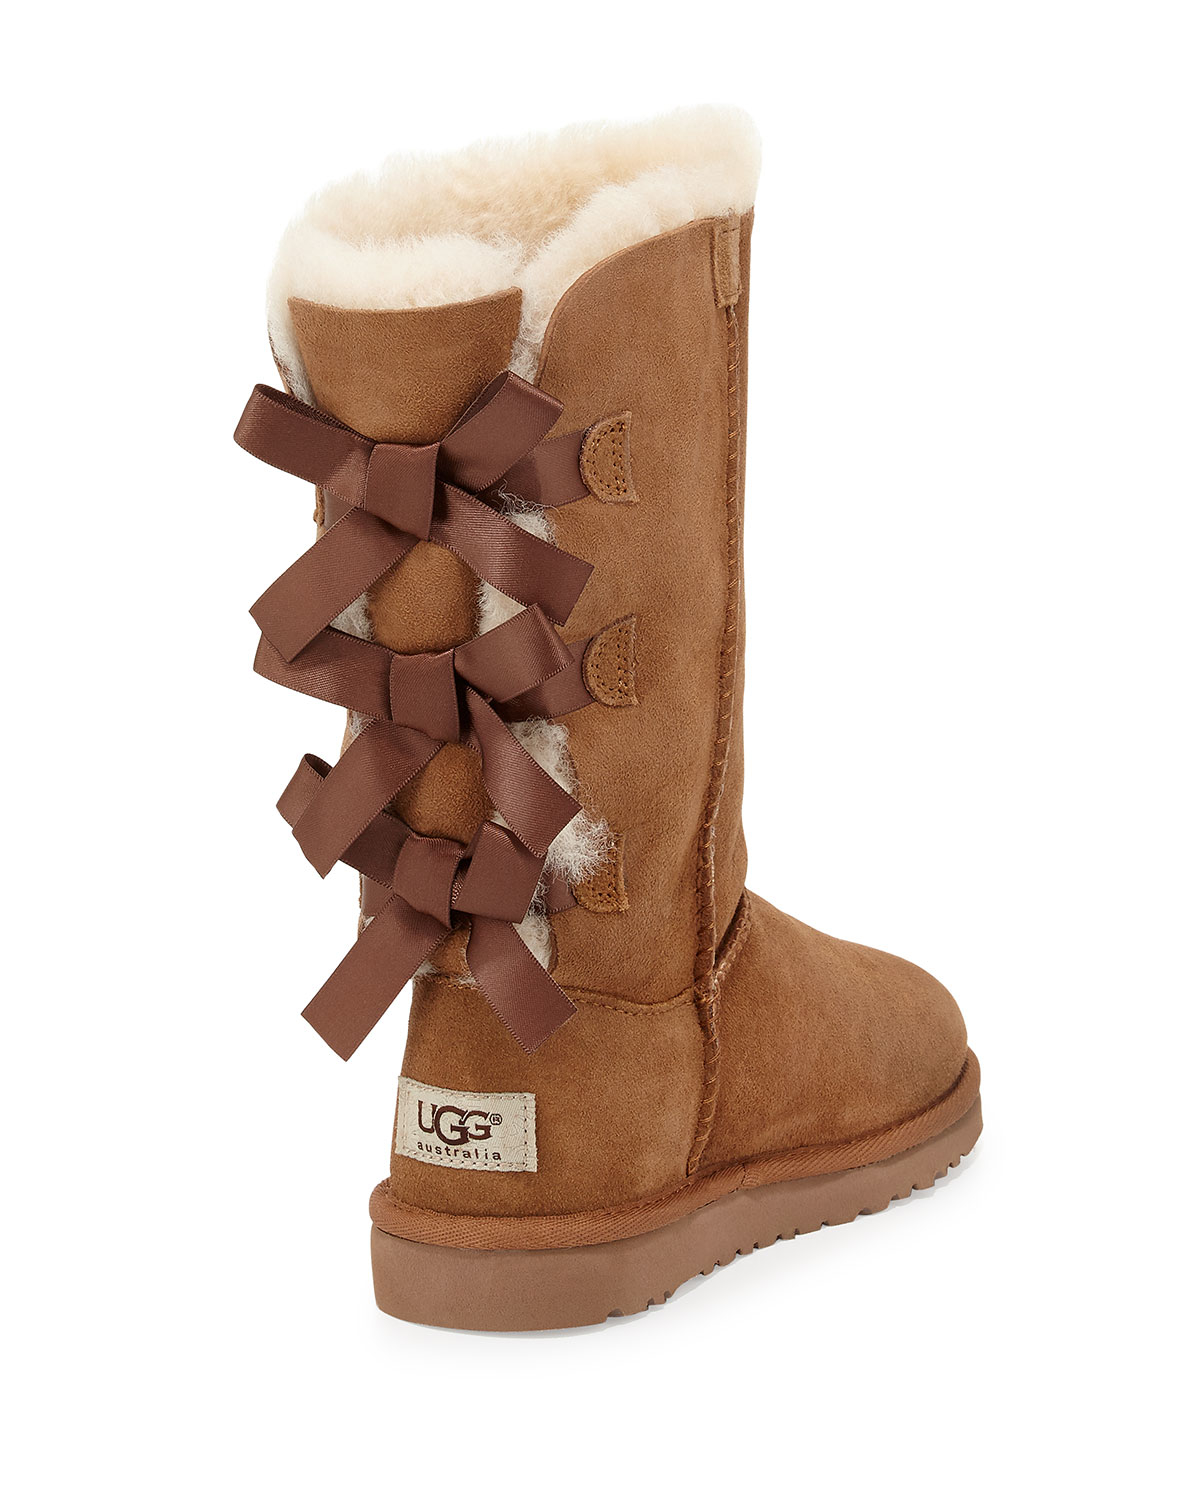 Image Result For Ugg Bailey Bow Tall